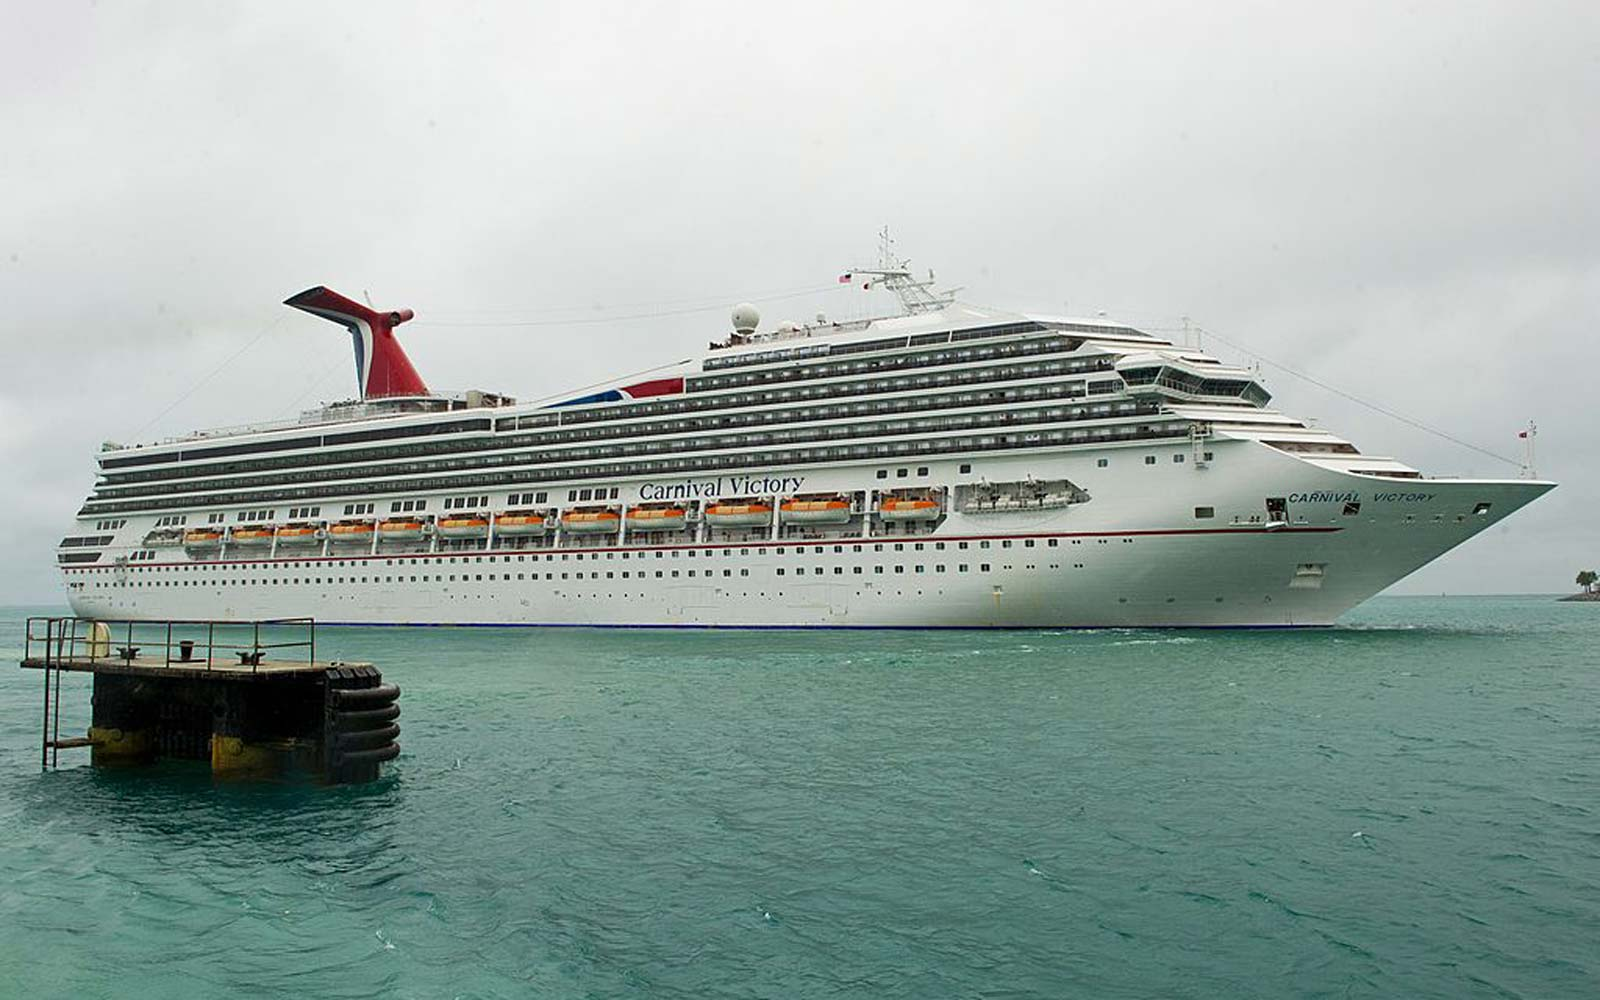 The Carnival cruise ship Victory departs port